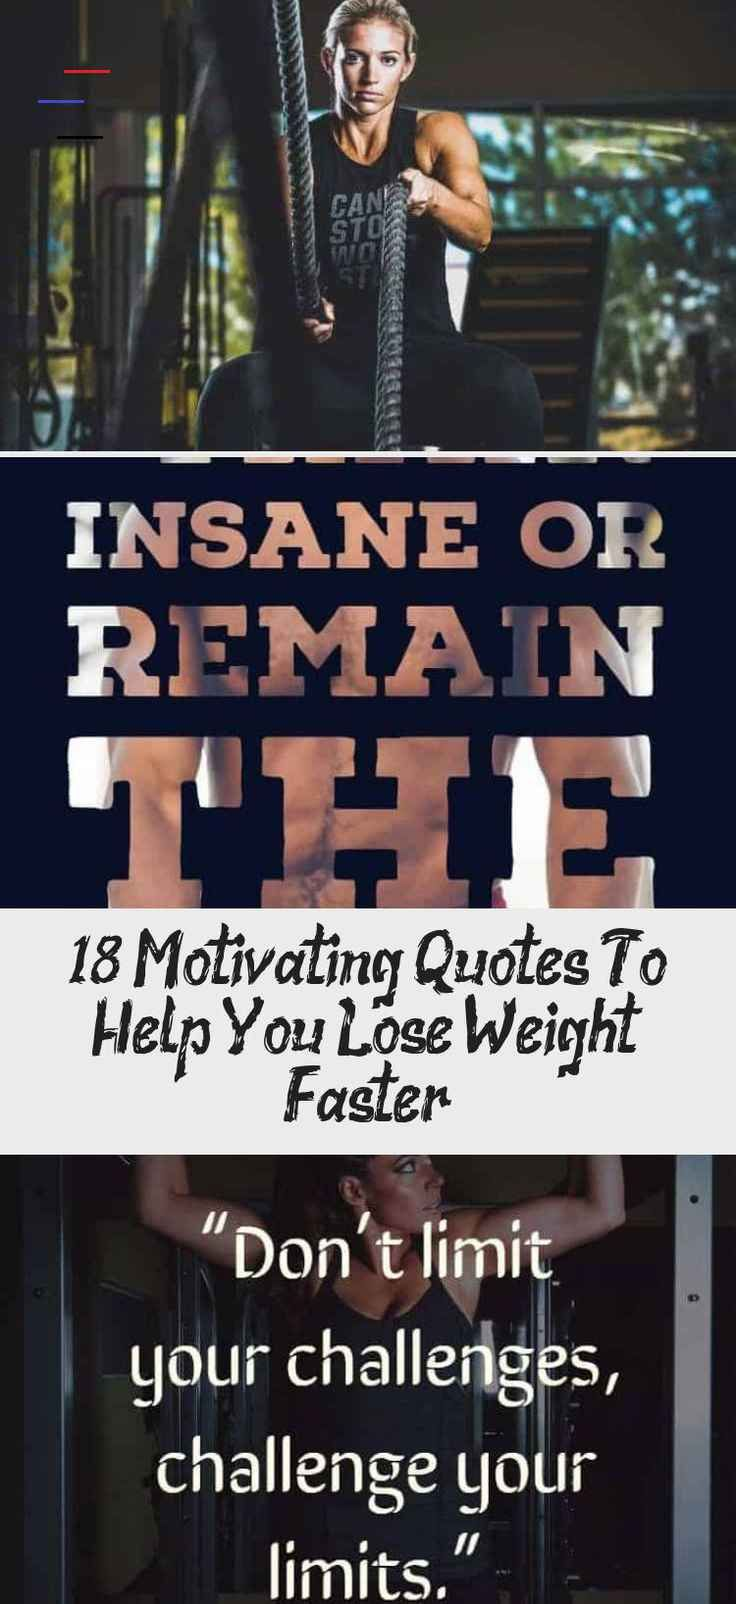 Motivating Quotes To Help You Lose Weight Faster | fitness motivation quotes | fitness motivation qu...